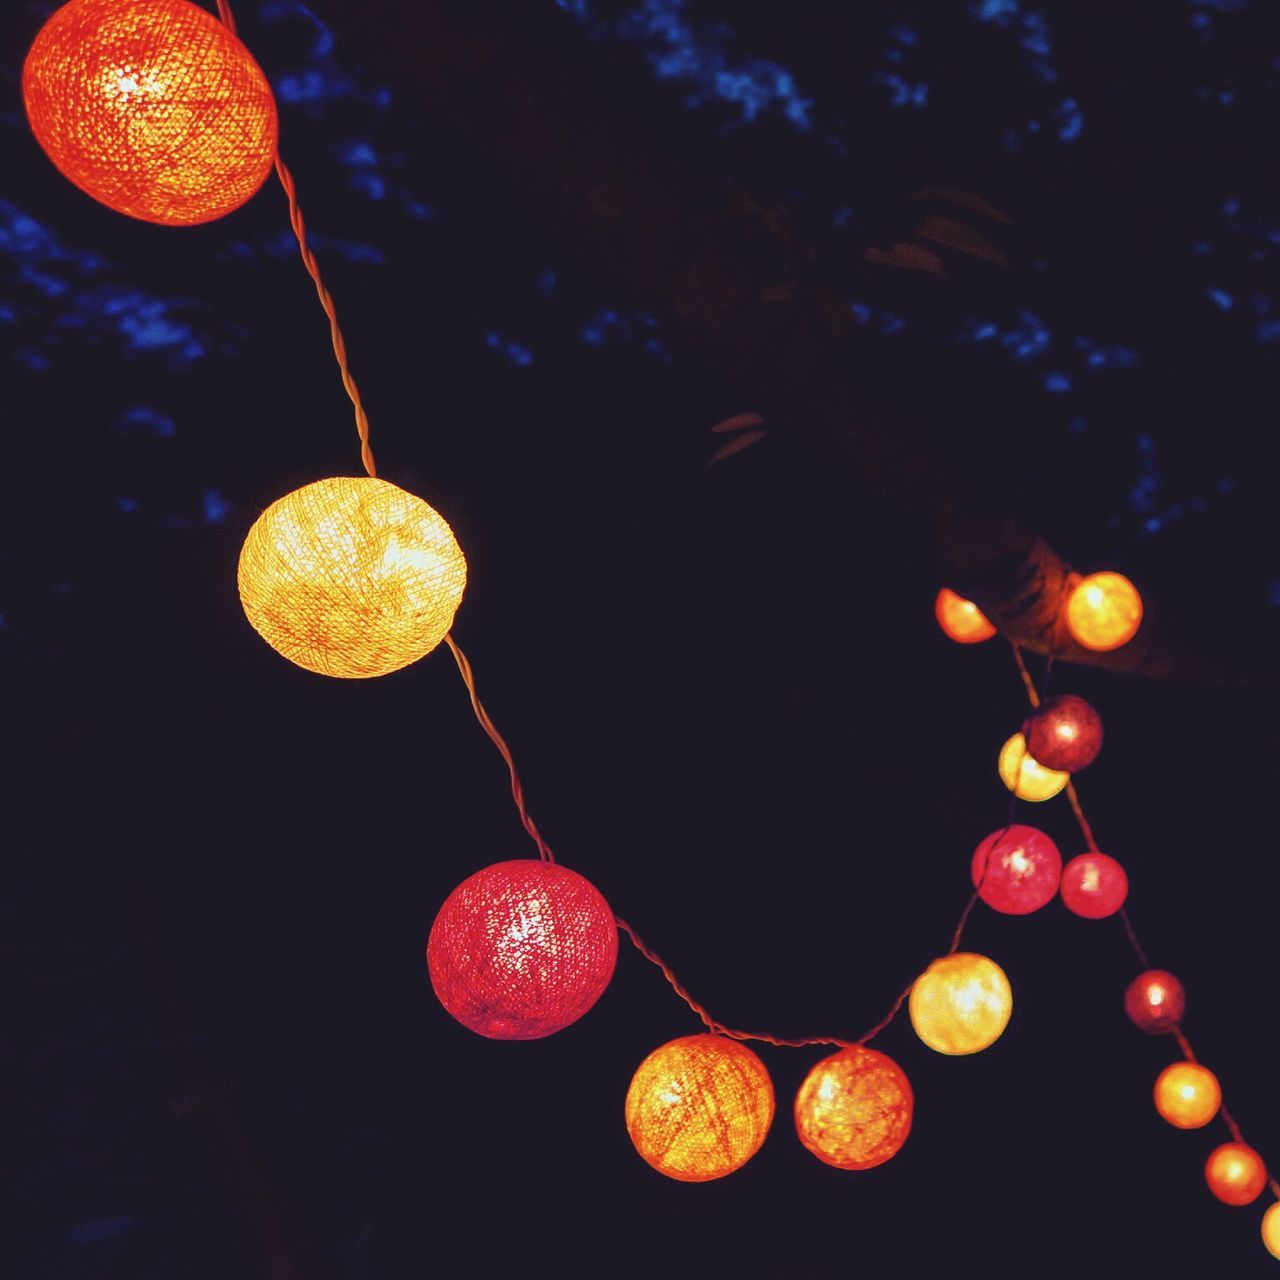 hanging, orange color, no people, tree, yellow, low angle view, citrus fruit, outdoors, night, illuminated, fruit, close-up, nature